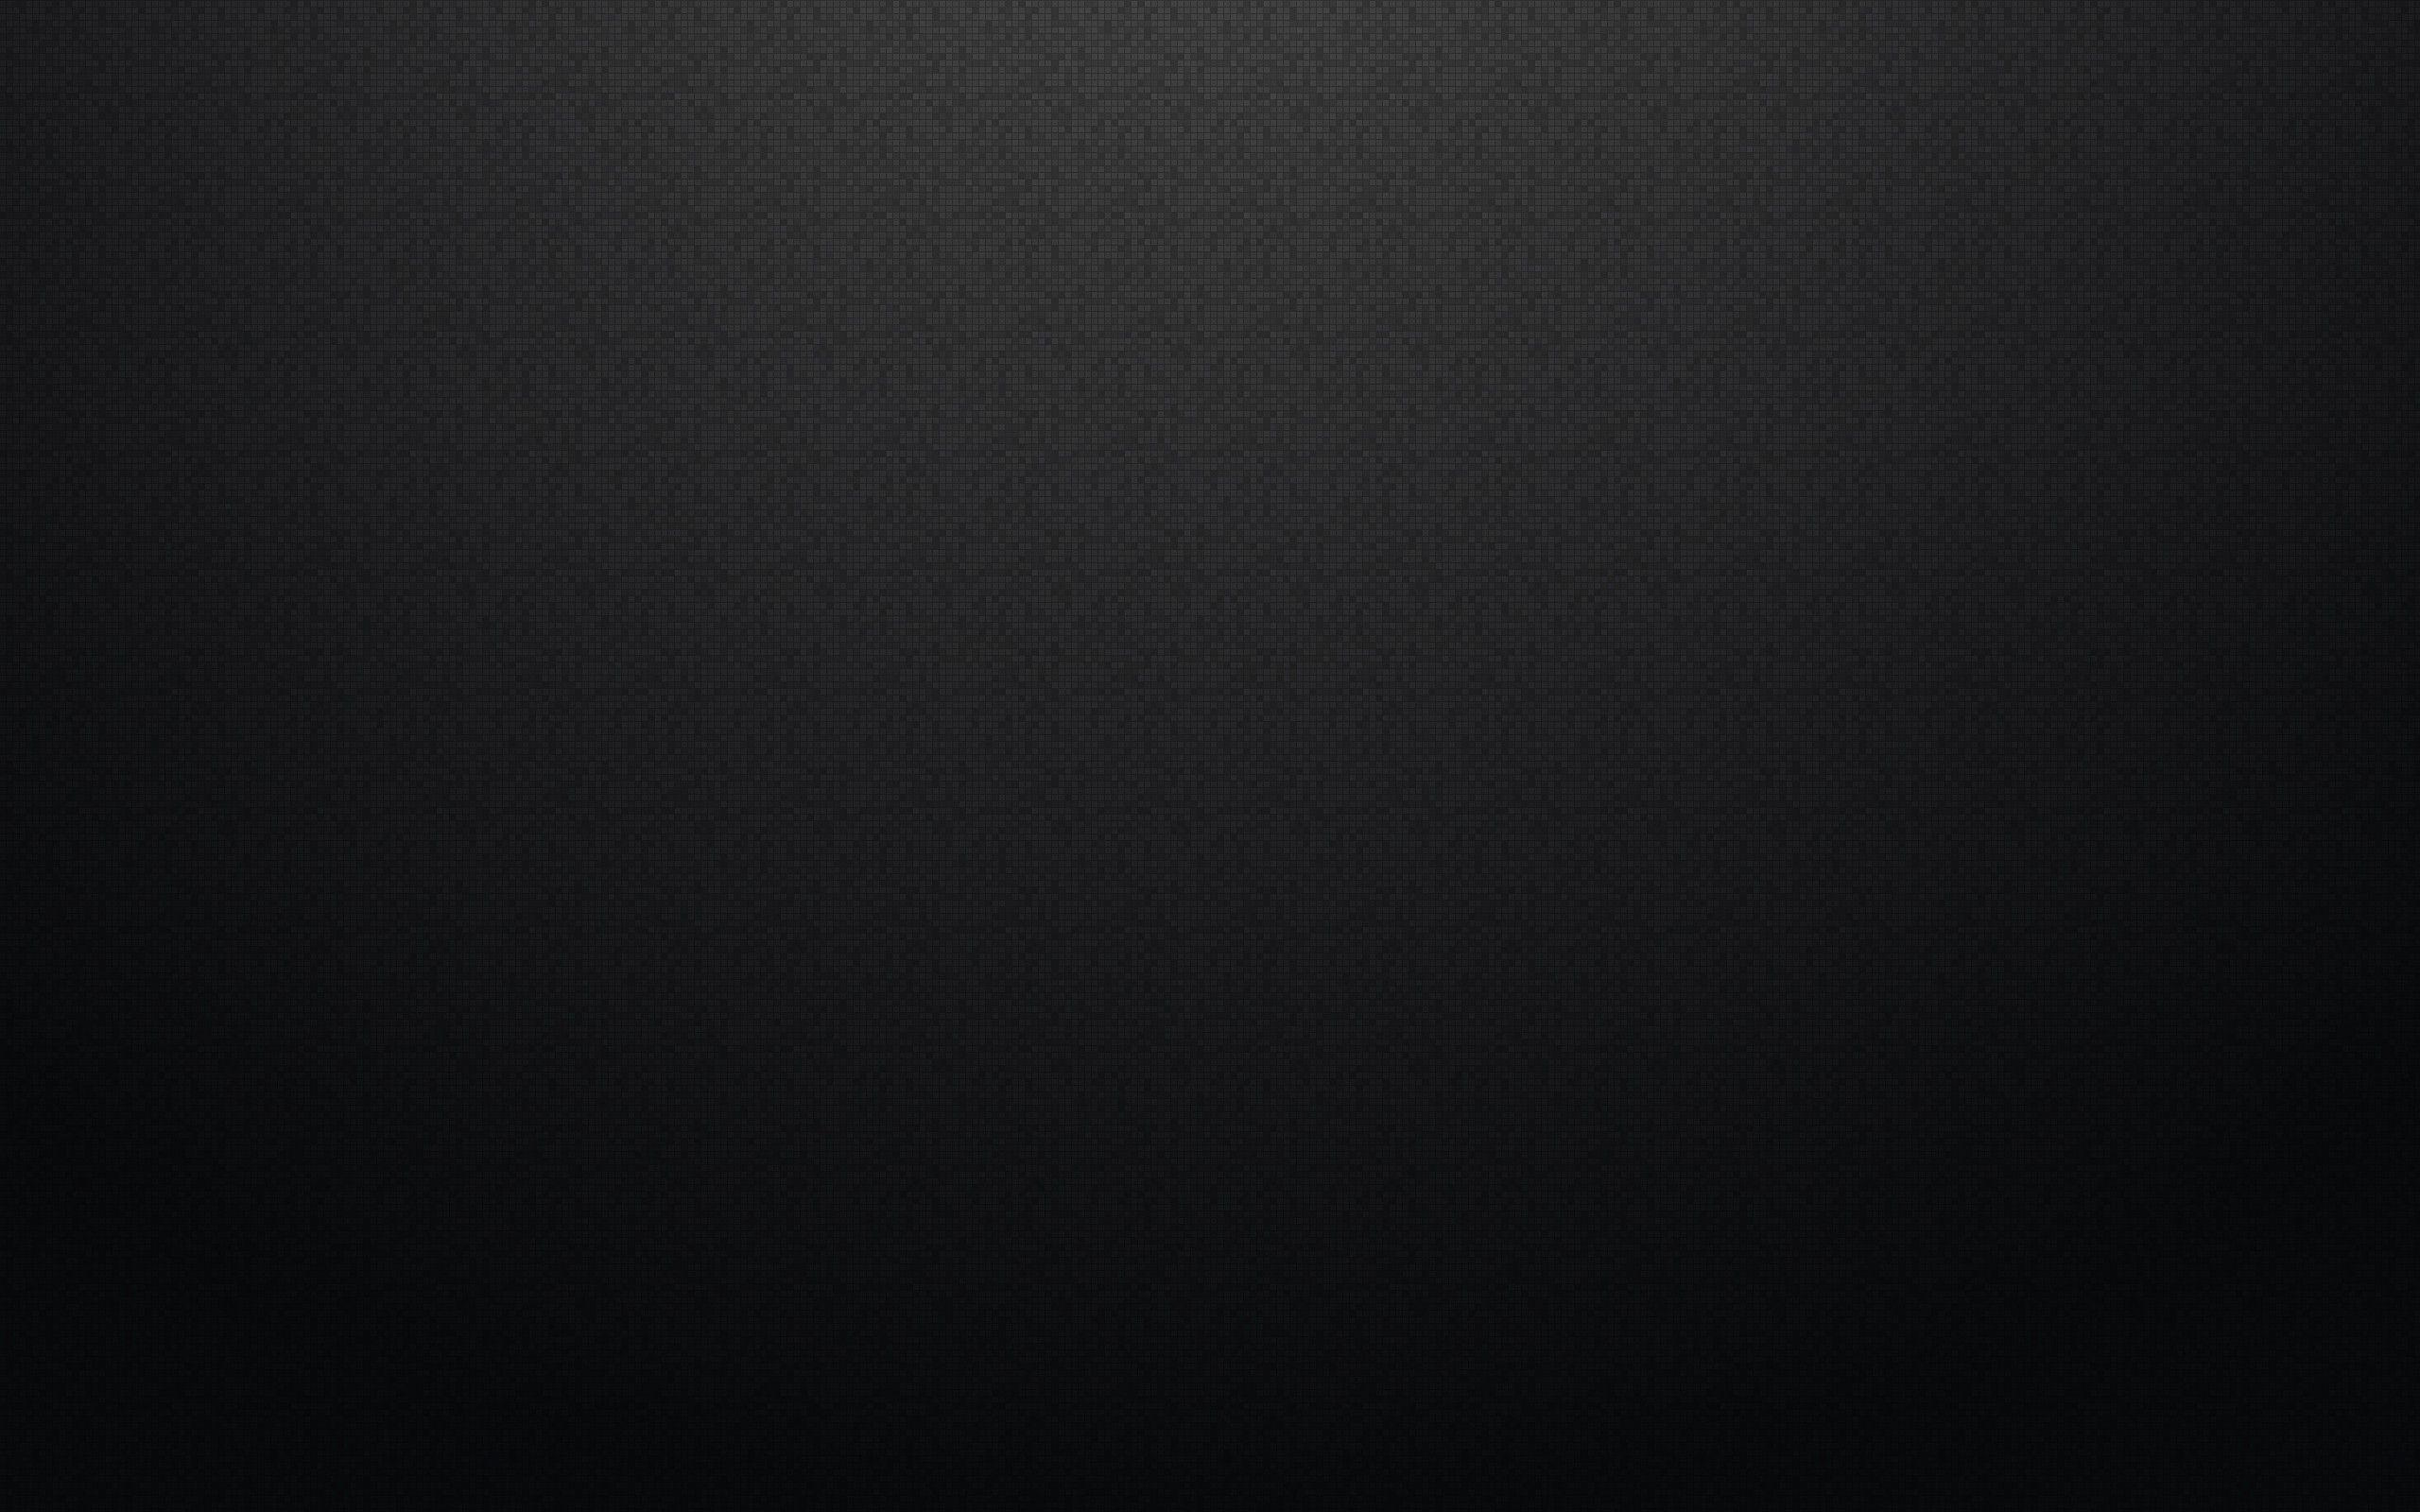 Flat Black Wallpapers - Wallpaper Cave